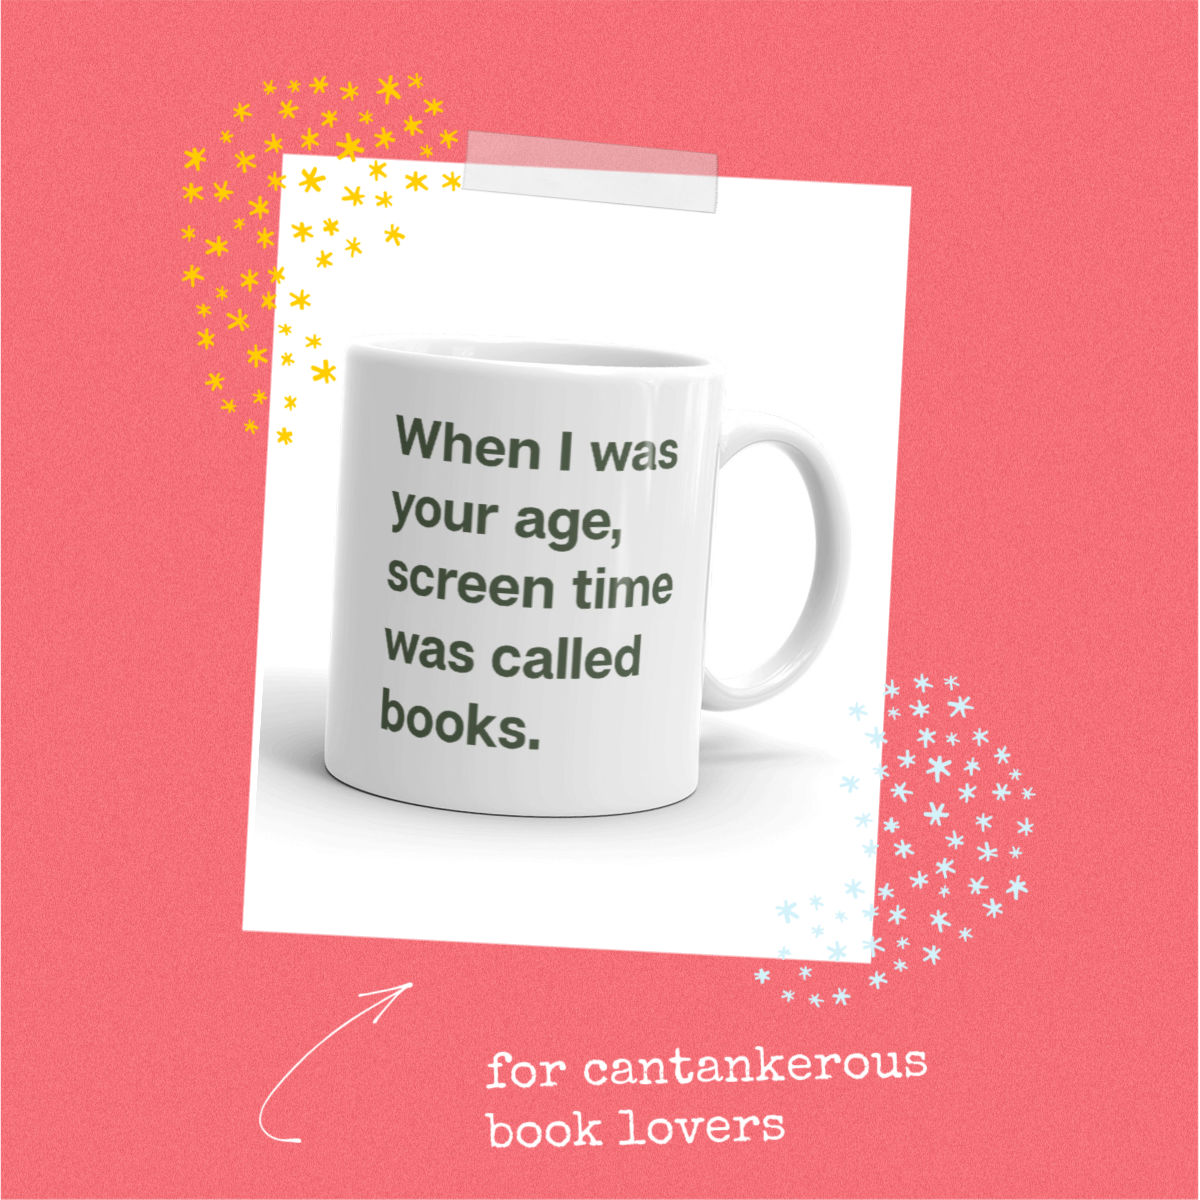 cobberson screen time was called books mug